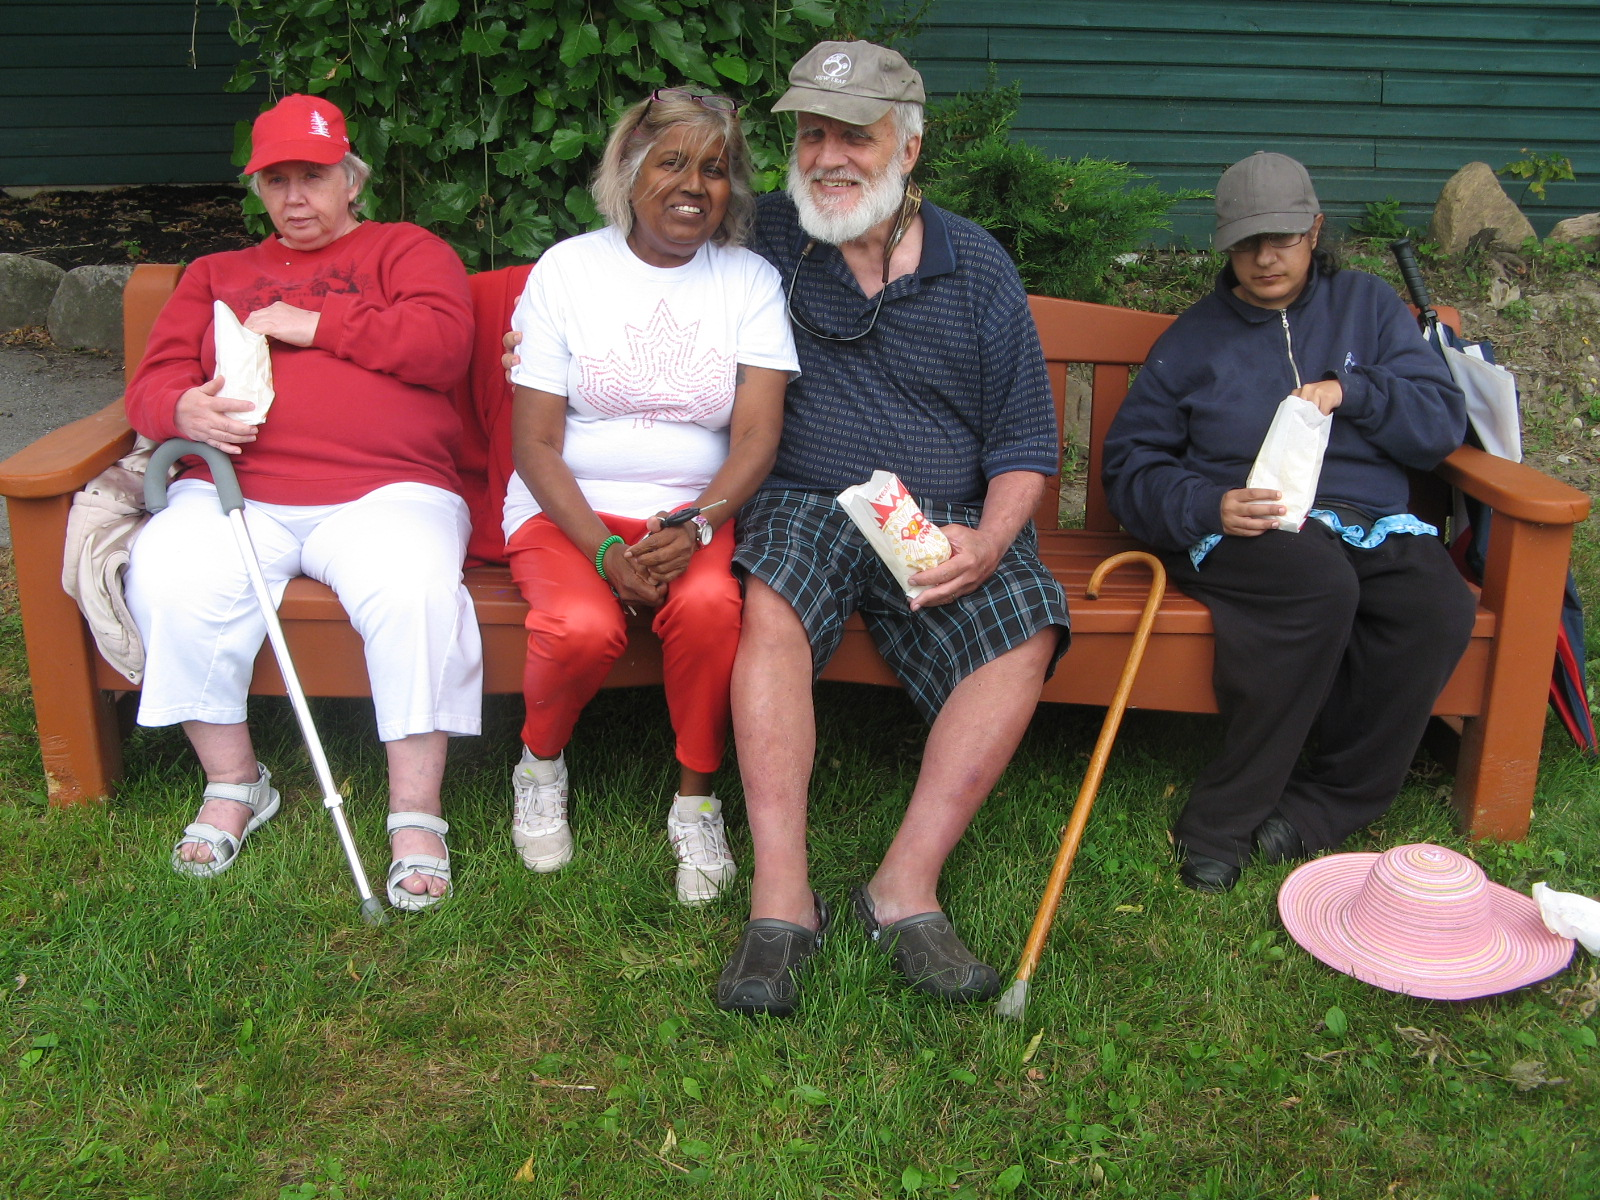 Four residents sitting on a bench eating popcorn